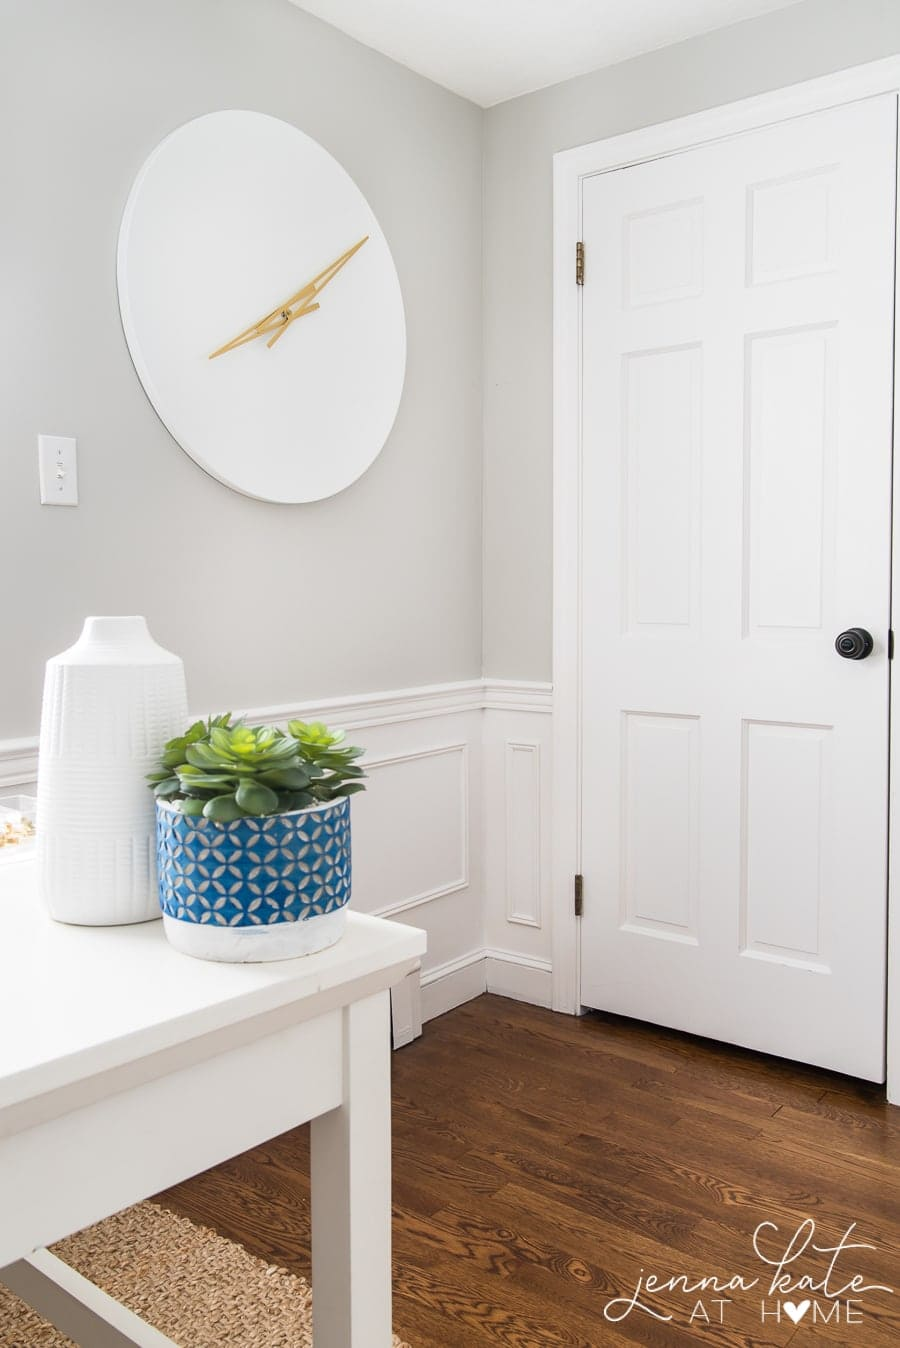 The edge of a desk, holding a potted plant and tall, white jug, with a large, white clock with gold handles nearby, and the door in the background